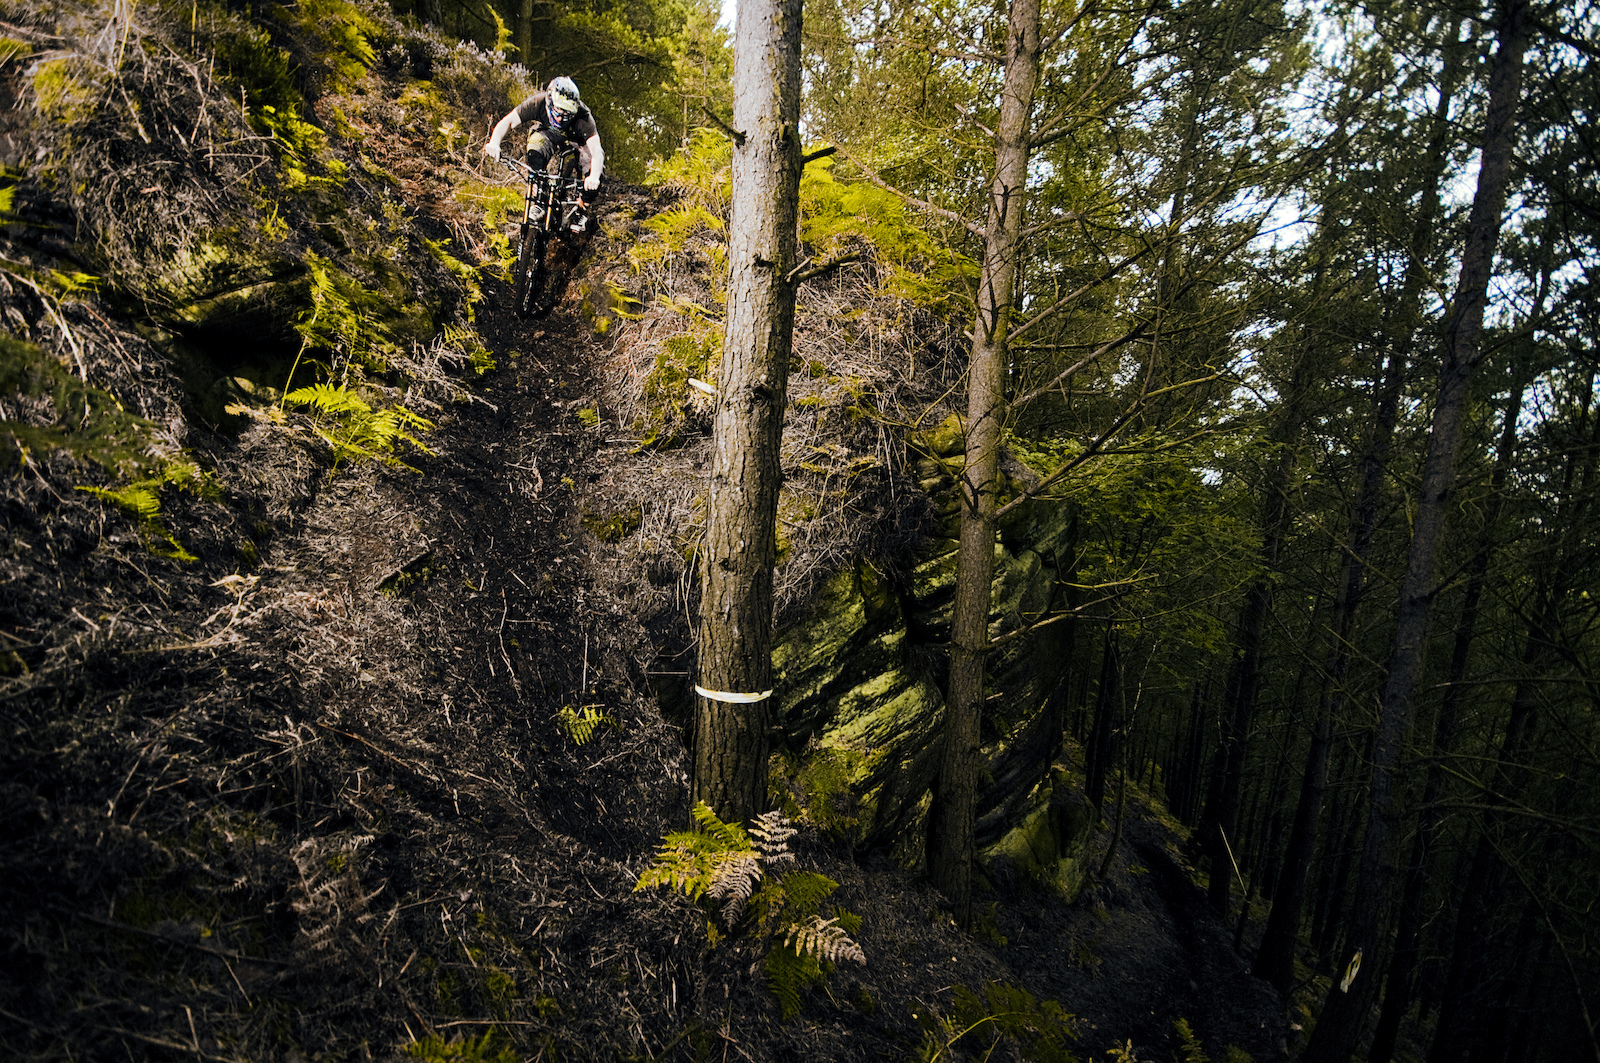 Scratchmere Scar, situated in Cumbria UK is home to a vast array of steep, tech and fast trails. Amidst the trees lay a fresh track that wasn't finished. The shoot, photo'd here was mega steep, loamy, loose and fast! 